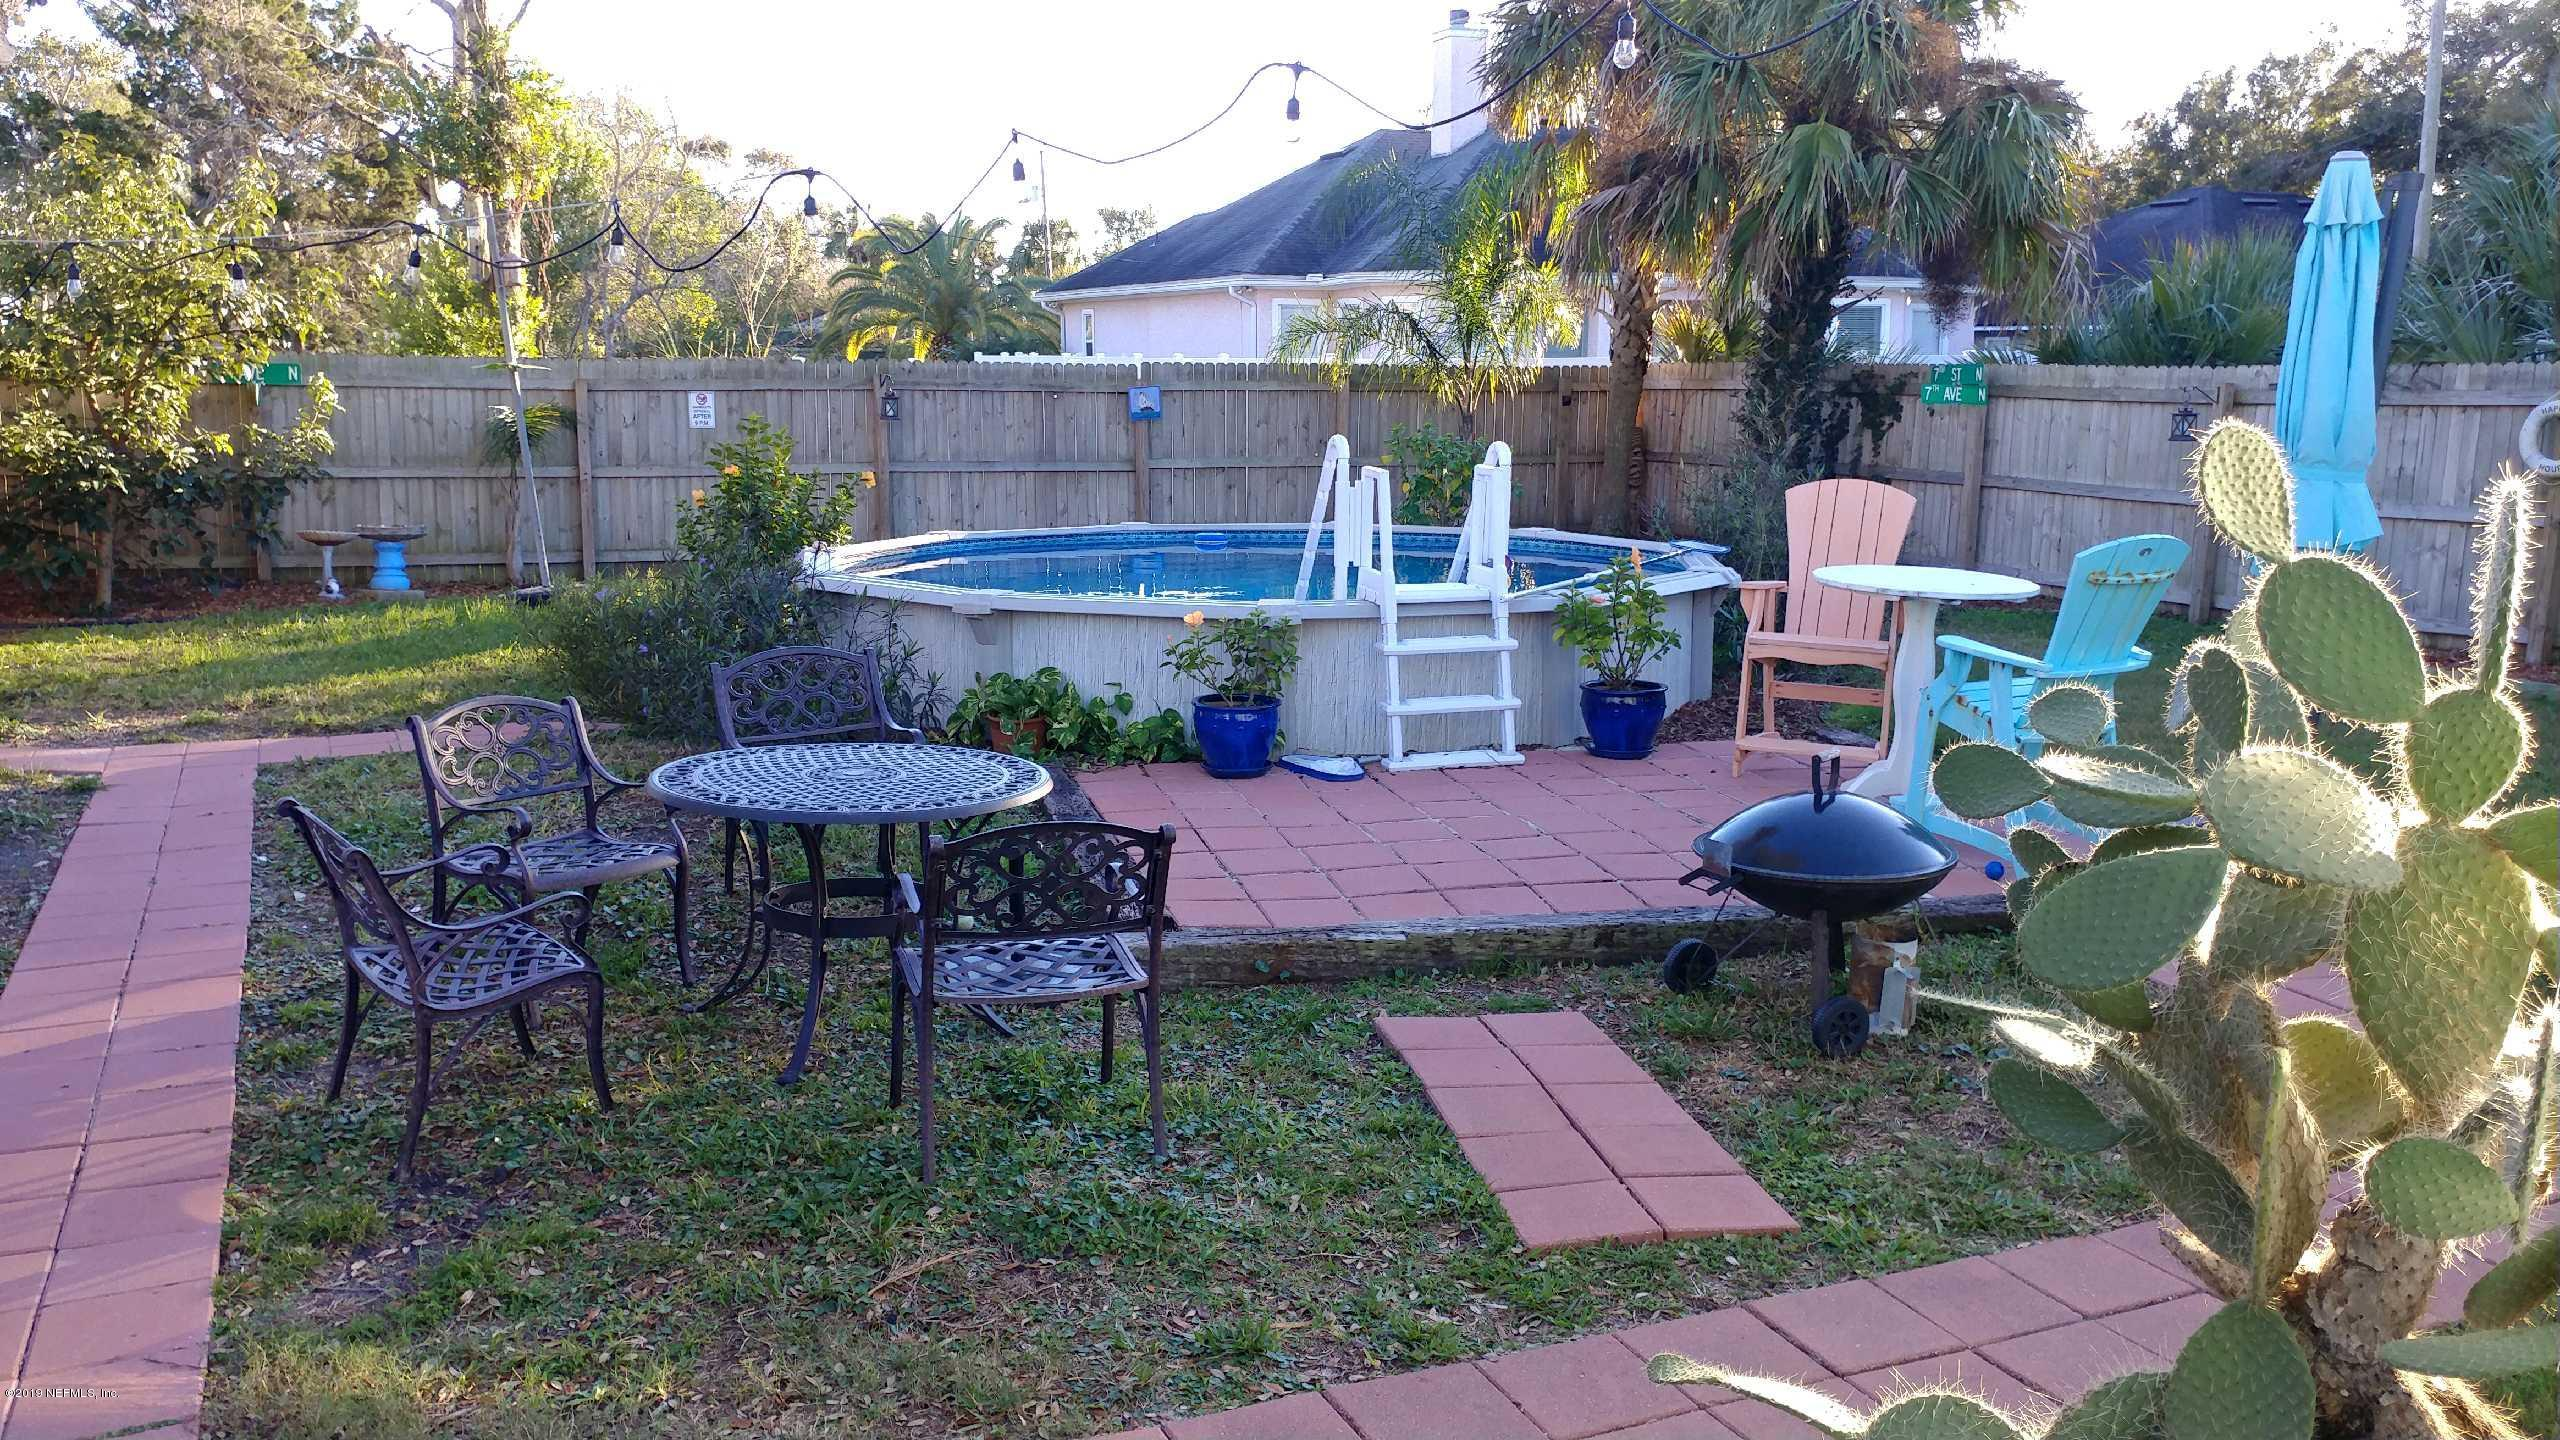 614 6TH AVE JACKSONVILLE BEACH - 2